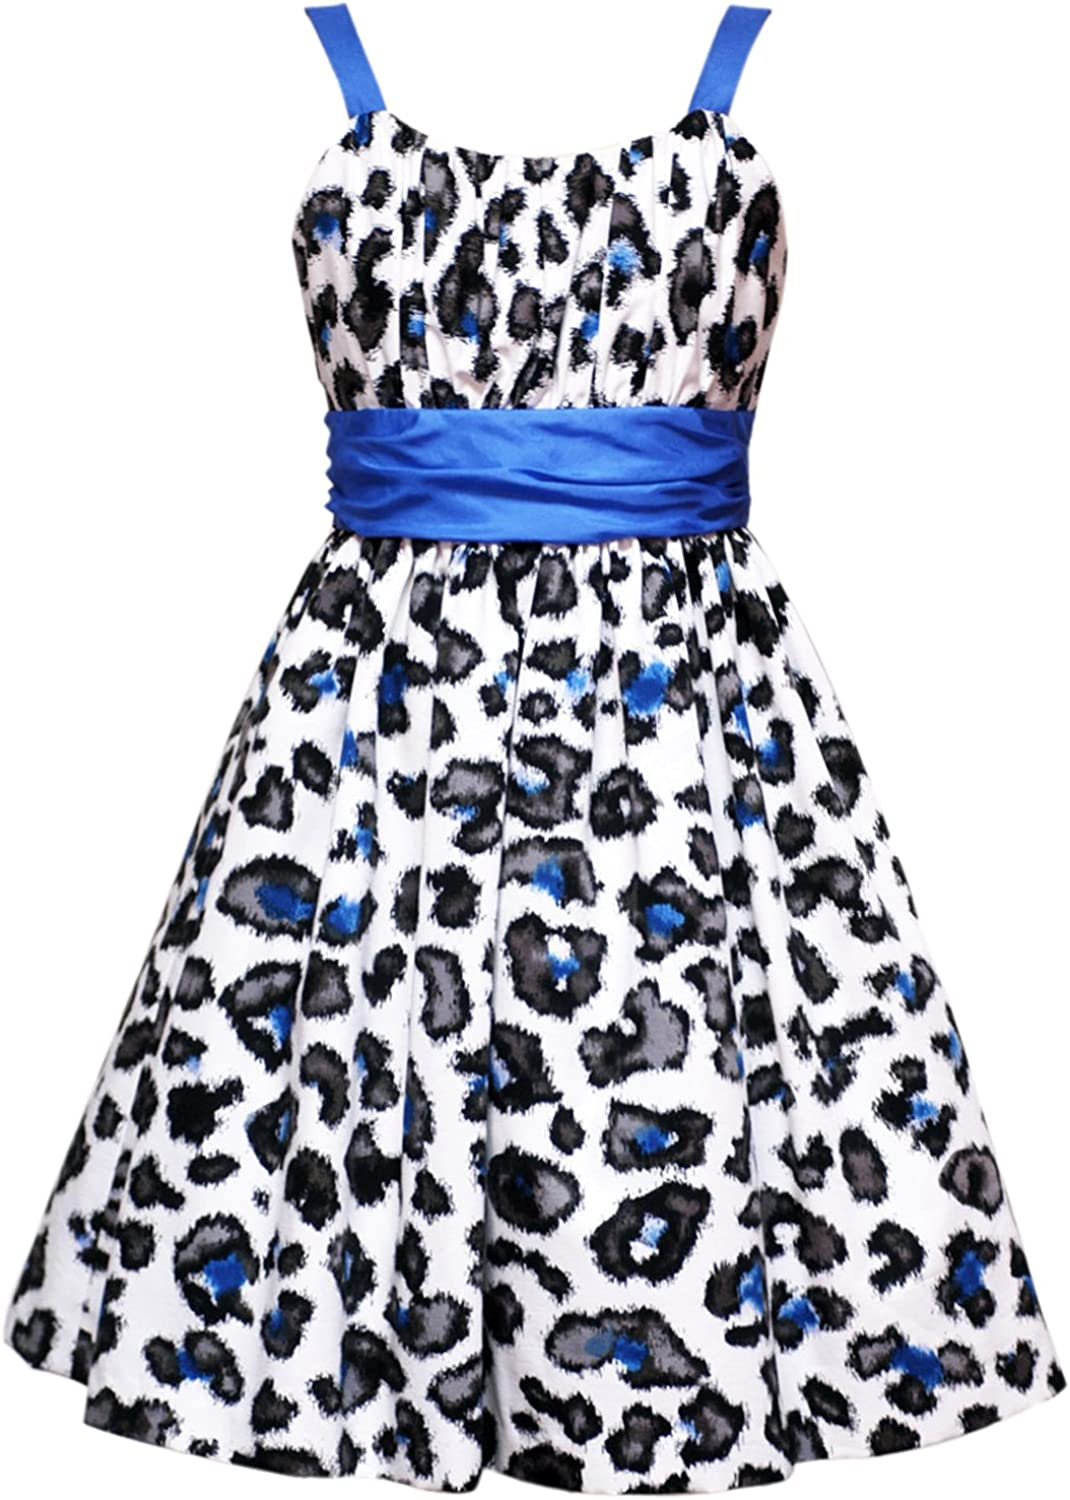 Amazon Com Rare Editions Size 10 Rre 51982e Blue Ivory Black Leopard Print Special Occasion Wedding Flower Girl Party Dress Jacket Set E451982 Tween Girls Clothing